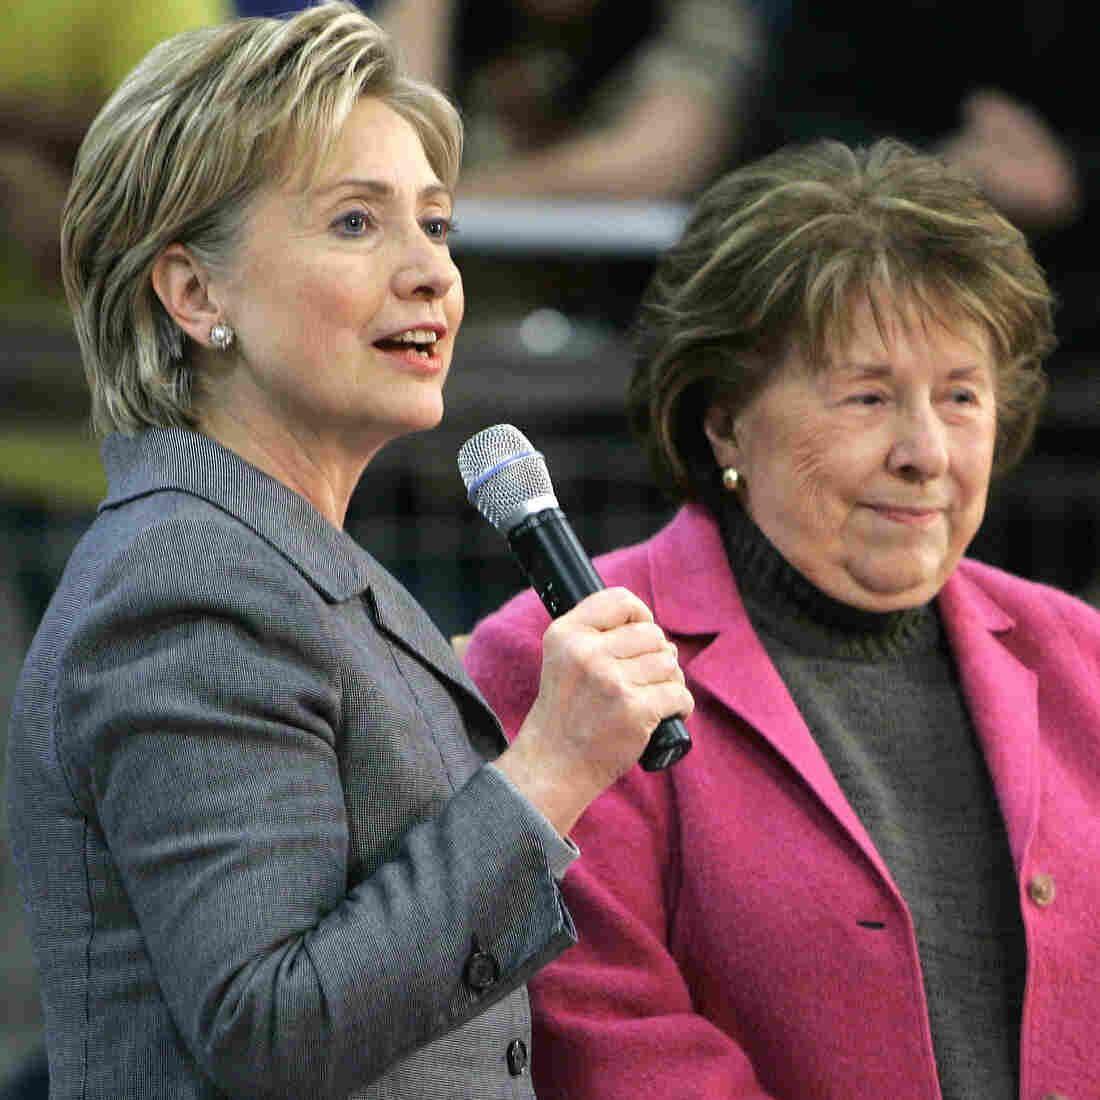 In this 2007 file photo, Dorothy Rodham campaign with her daughter, then-New York Sen. Hillary Clinton, on the campaign trail in Iowa